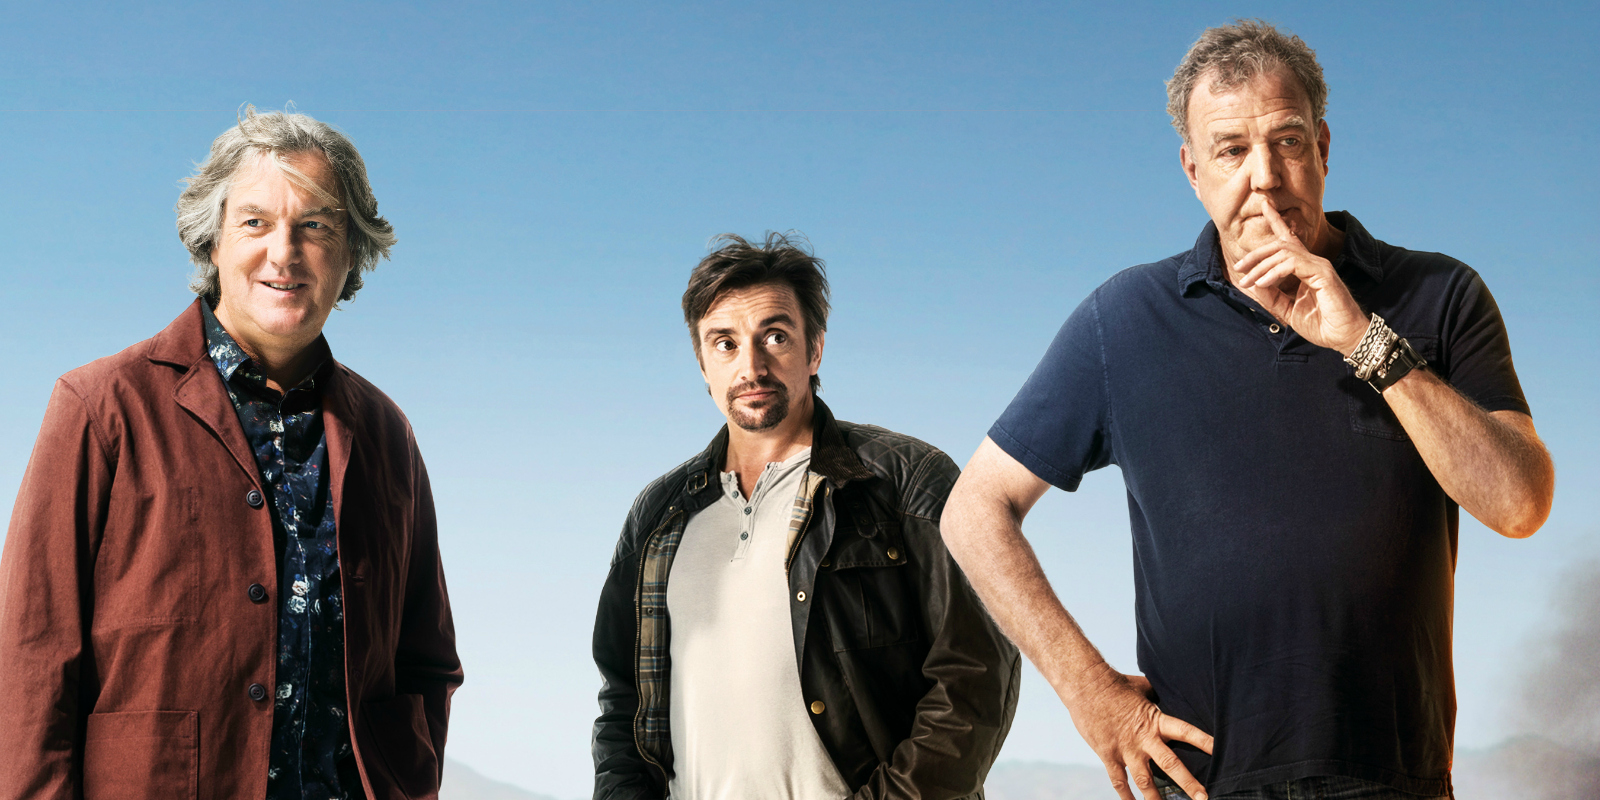 The Grand Tour Breaks Amazon Streaming Records